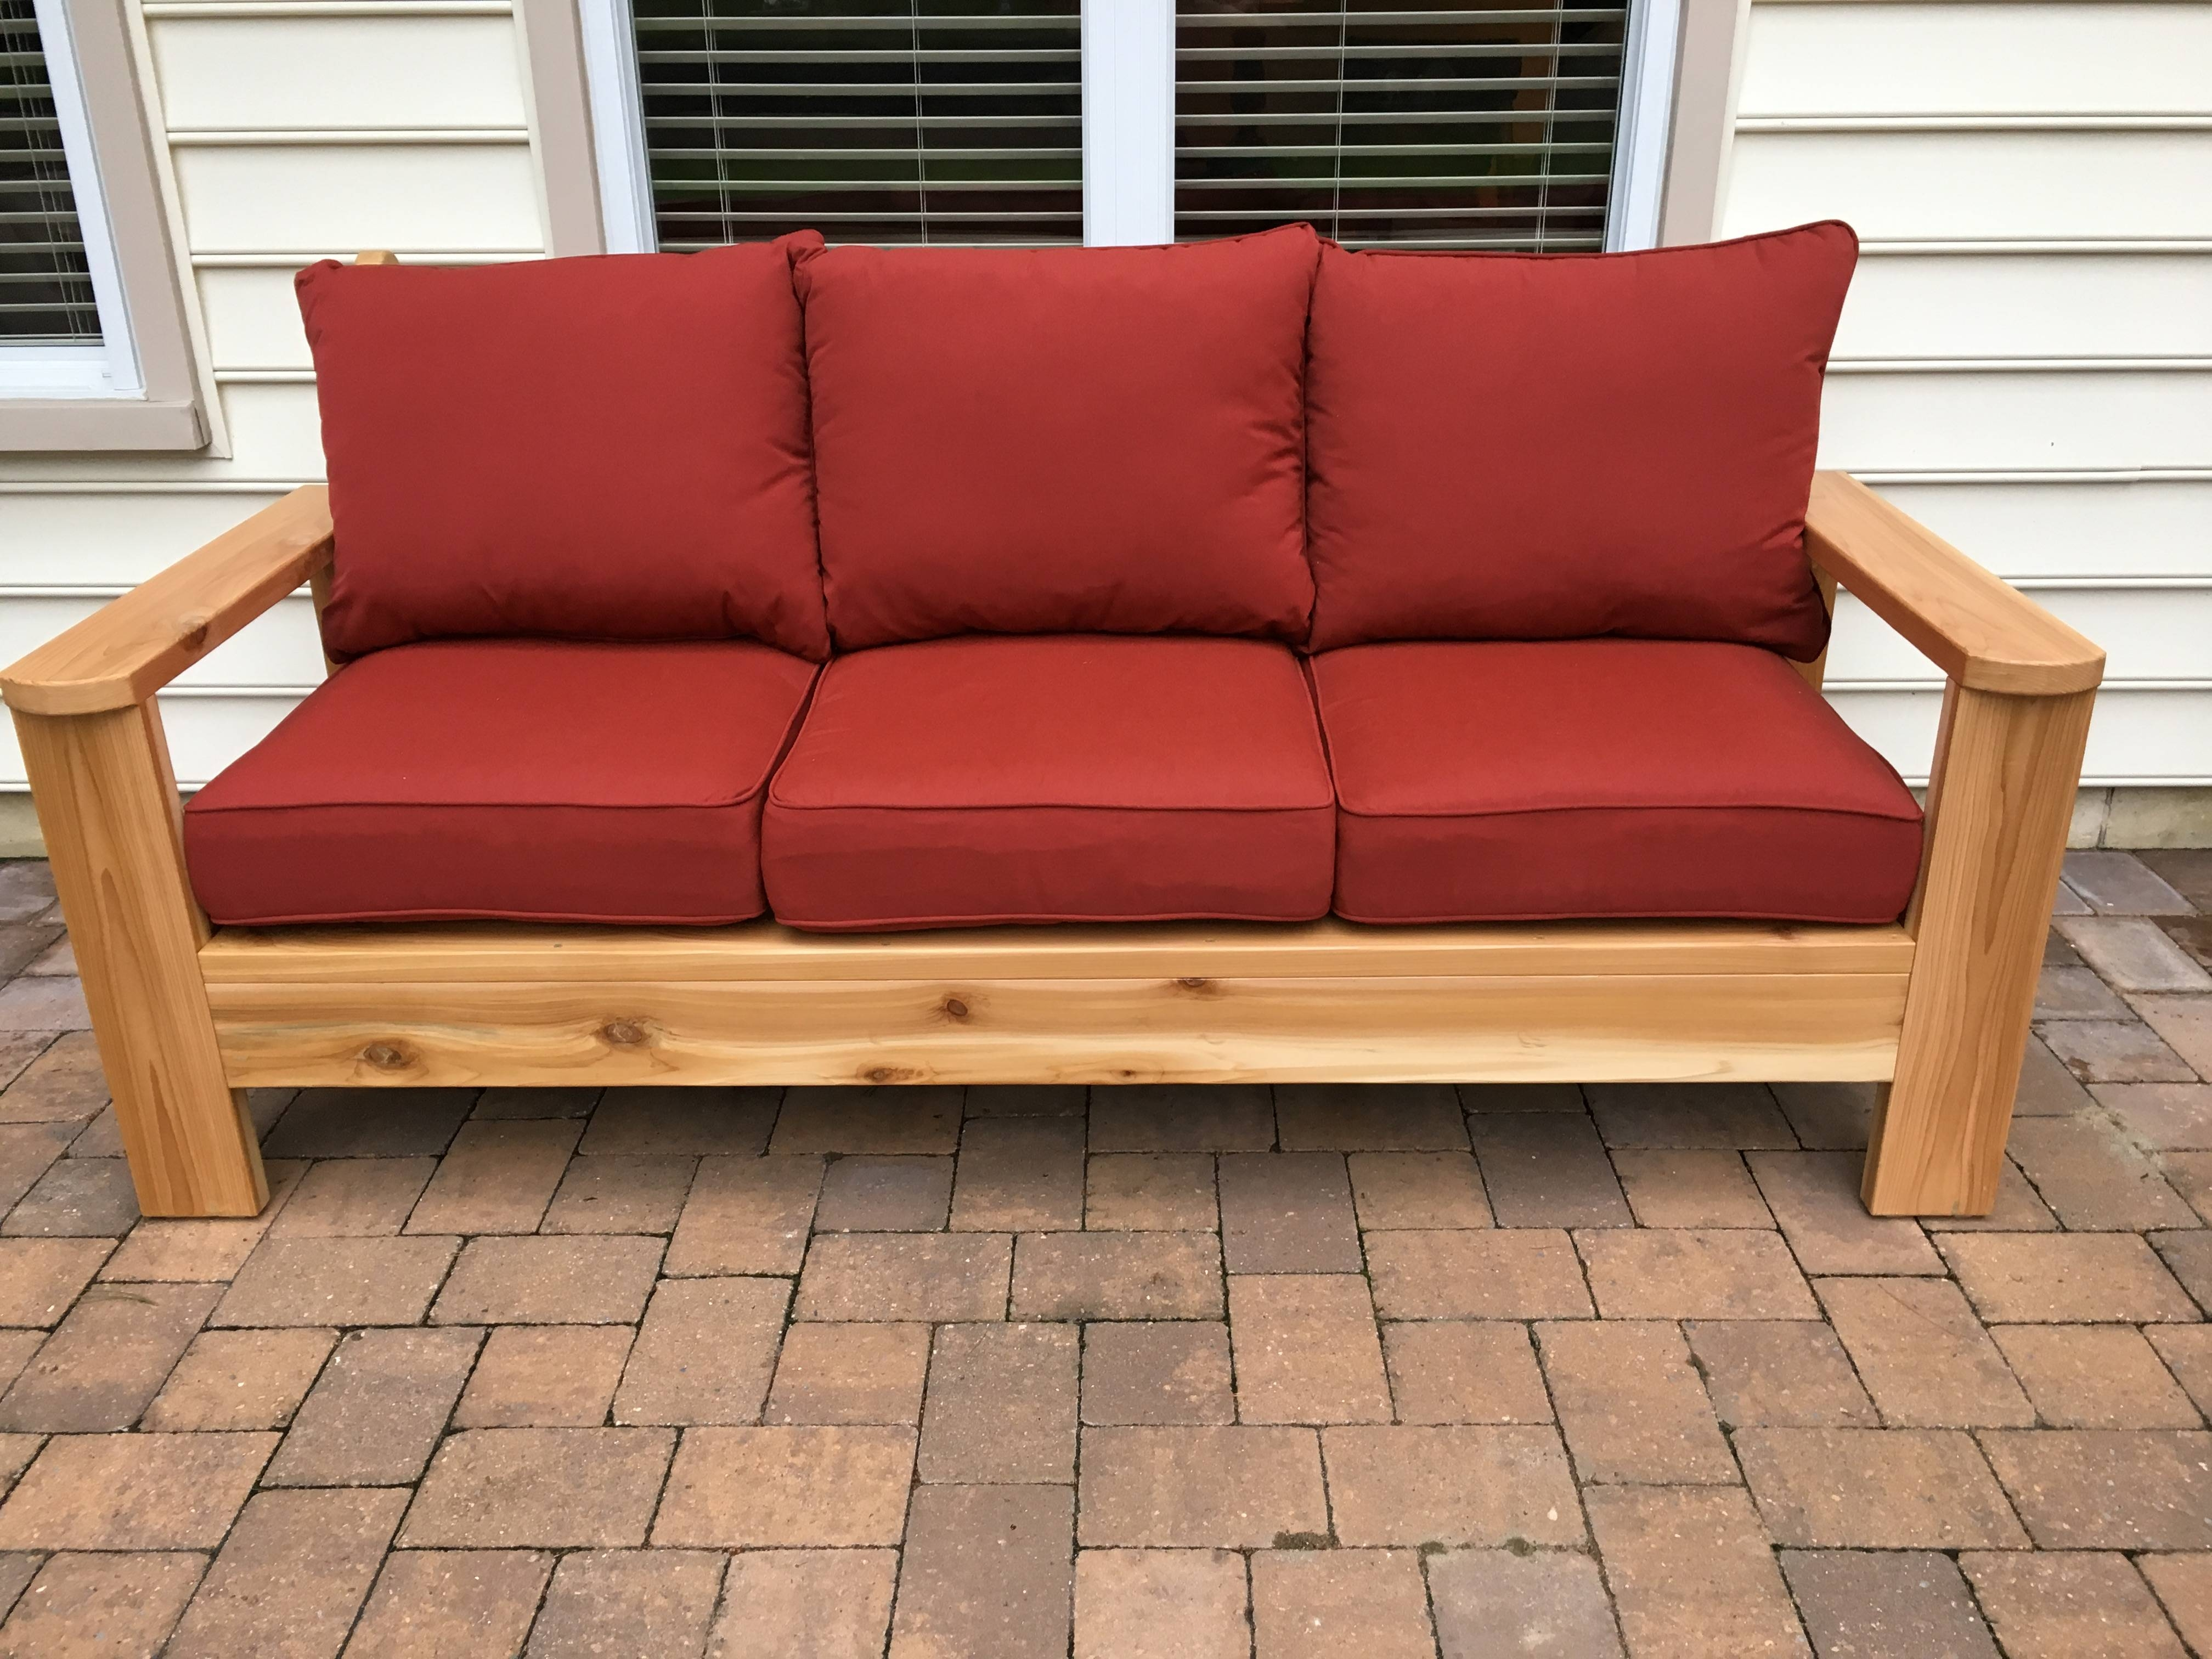 Ana White | Cedar Outdoor Sofa - Diy Projects throughout Ana White Outdoor Sofas (Image 1 of 15)